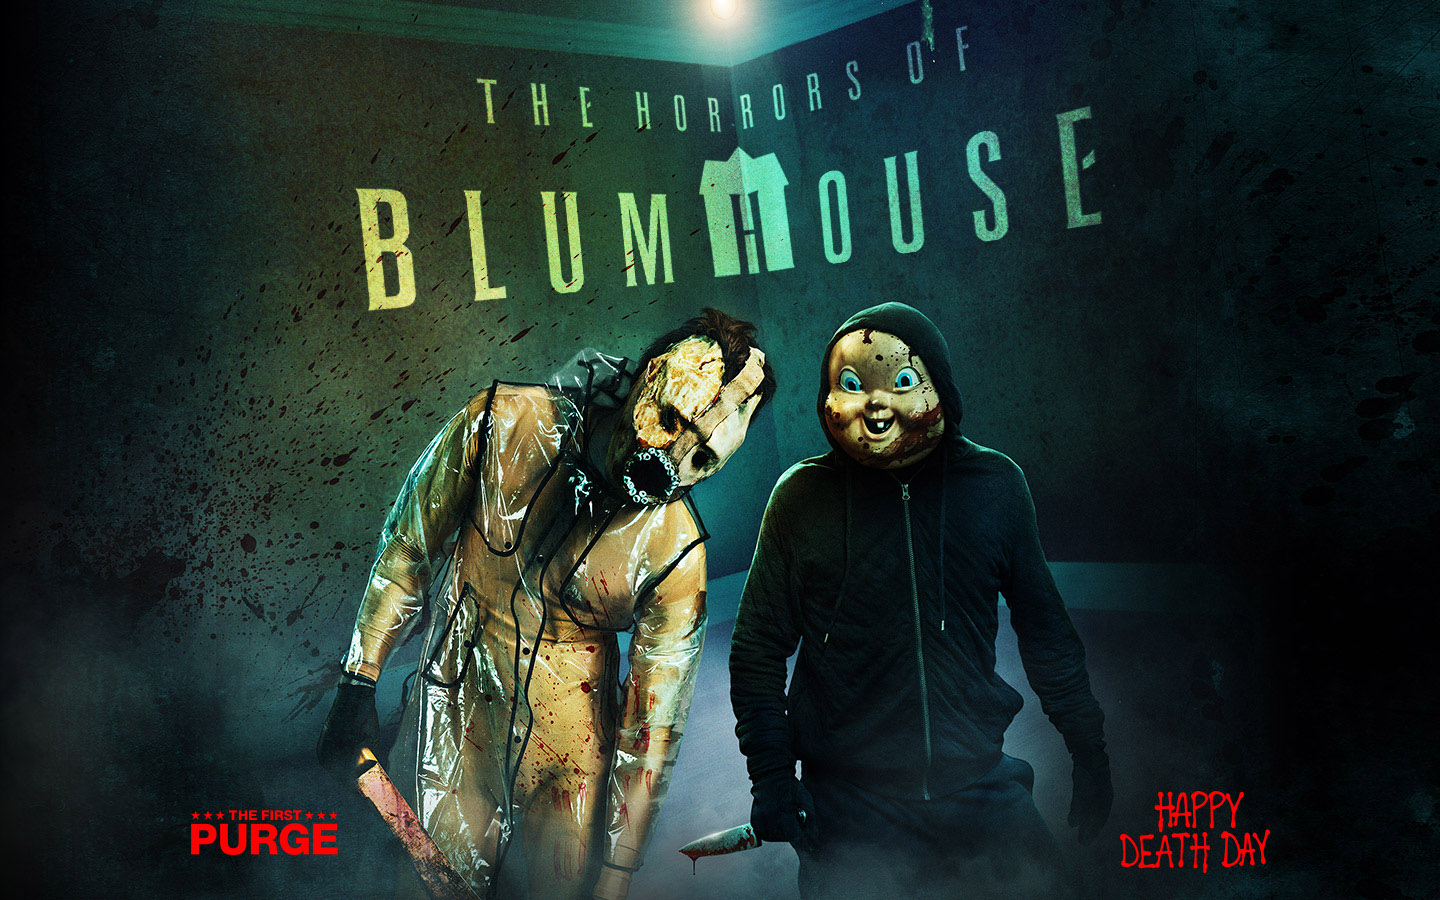 the horrors of blumhouse announced for halloween horror nights 2018